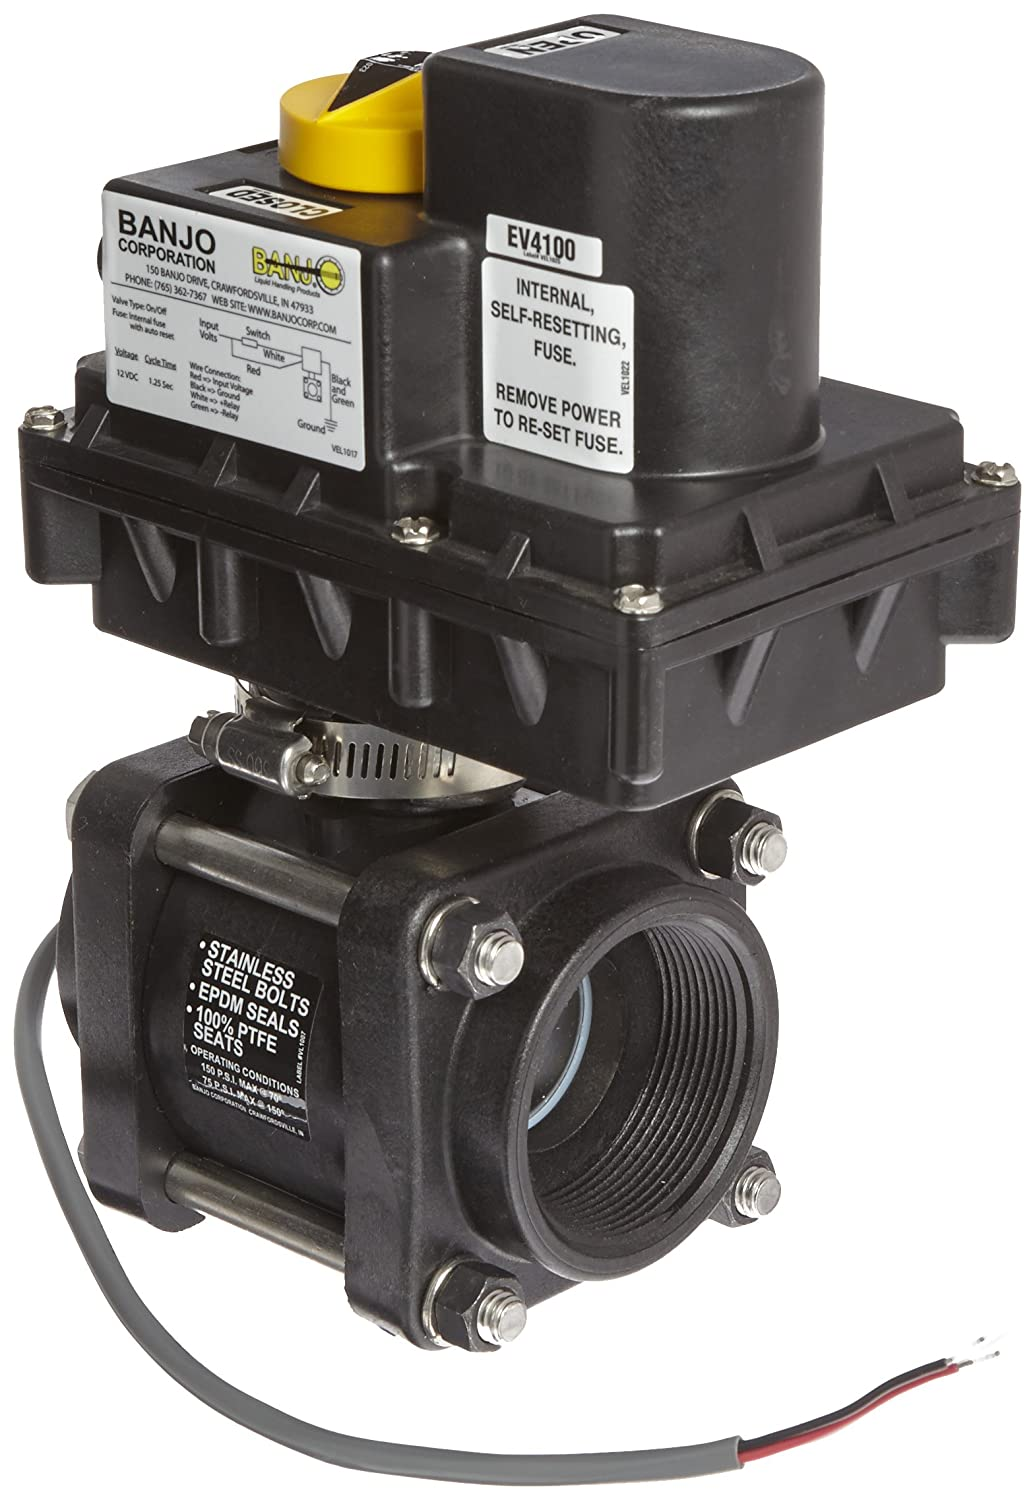 "Banjo EV200 Polypropylene Electronic Actuated Ball Valve, 12VDC, Standard Port, 2"" NPT Female"